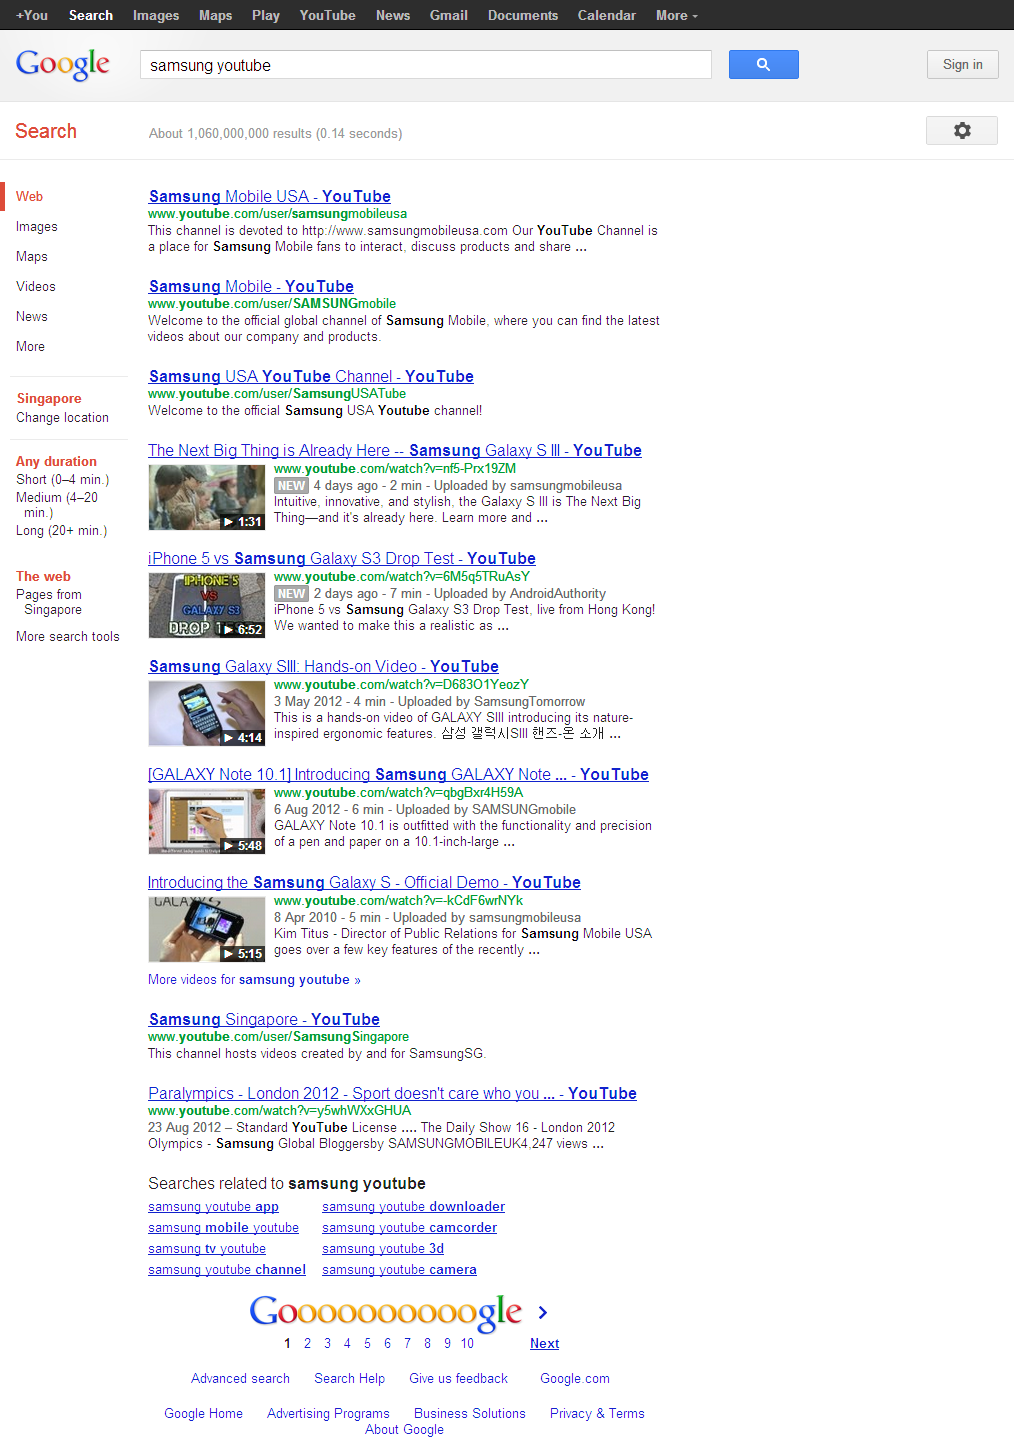 Google Youtube Music Key One Ups Streaming Music Services: Failed SERPs: Google's Entire SERP Has Only YouTube